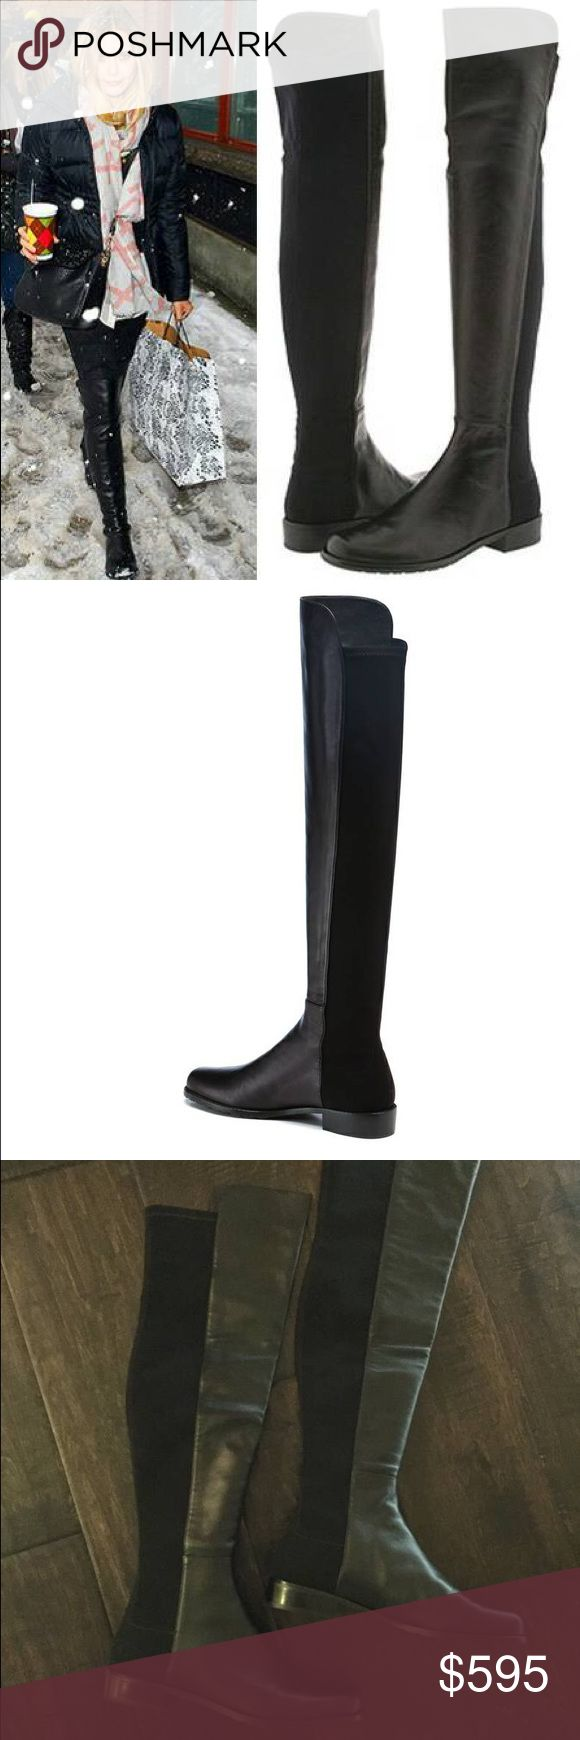 "Stuart Weizmann 50/50 Over the Knee Boots Selling Stuart Weitzman ""The 5050 Boot"" in black, worn twice, details below -   - Stuart Weitzman Brand - ""The 5050 Boot"" - Size 7.5 women - Color Black - Soft Napa Leather - Pull on with stretch back - Heel measures approximately ¾ inch - Shaft measures approximately 19 inches (shaft front extends addition 1.5 inches) - circumference 14 inches - leather insole - rubber sole - imported - brand new priced at $655 + tax…"